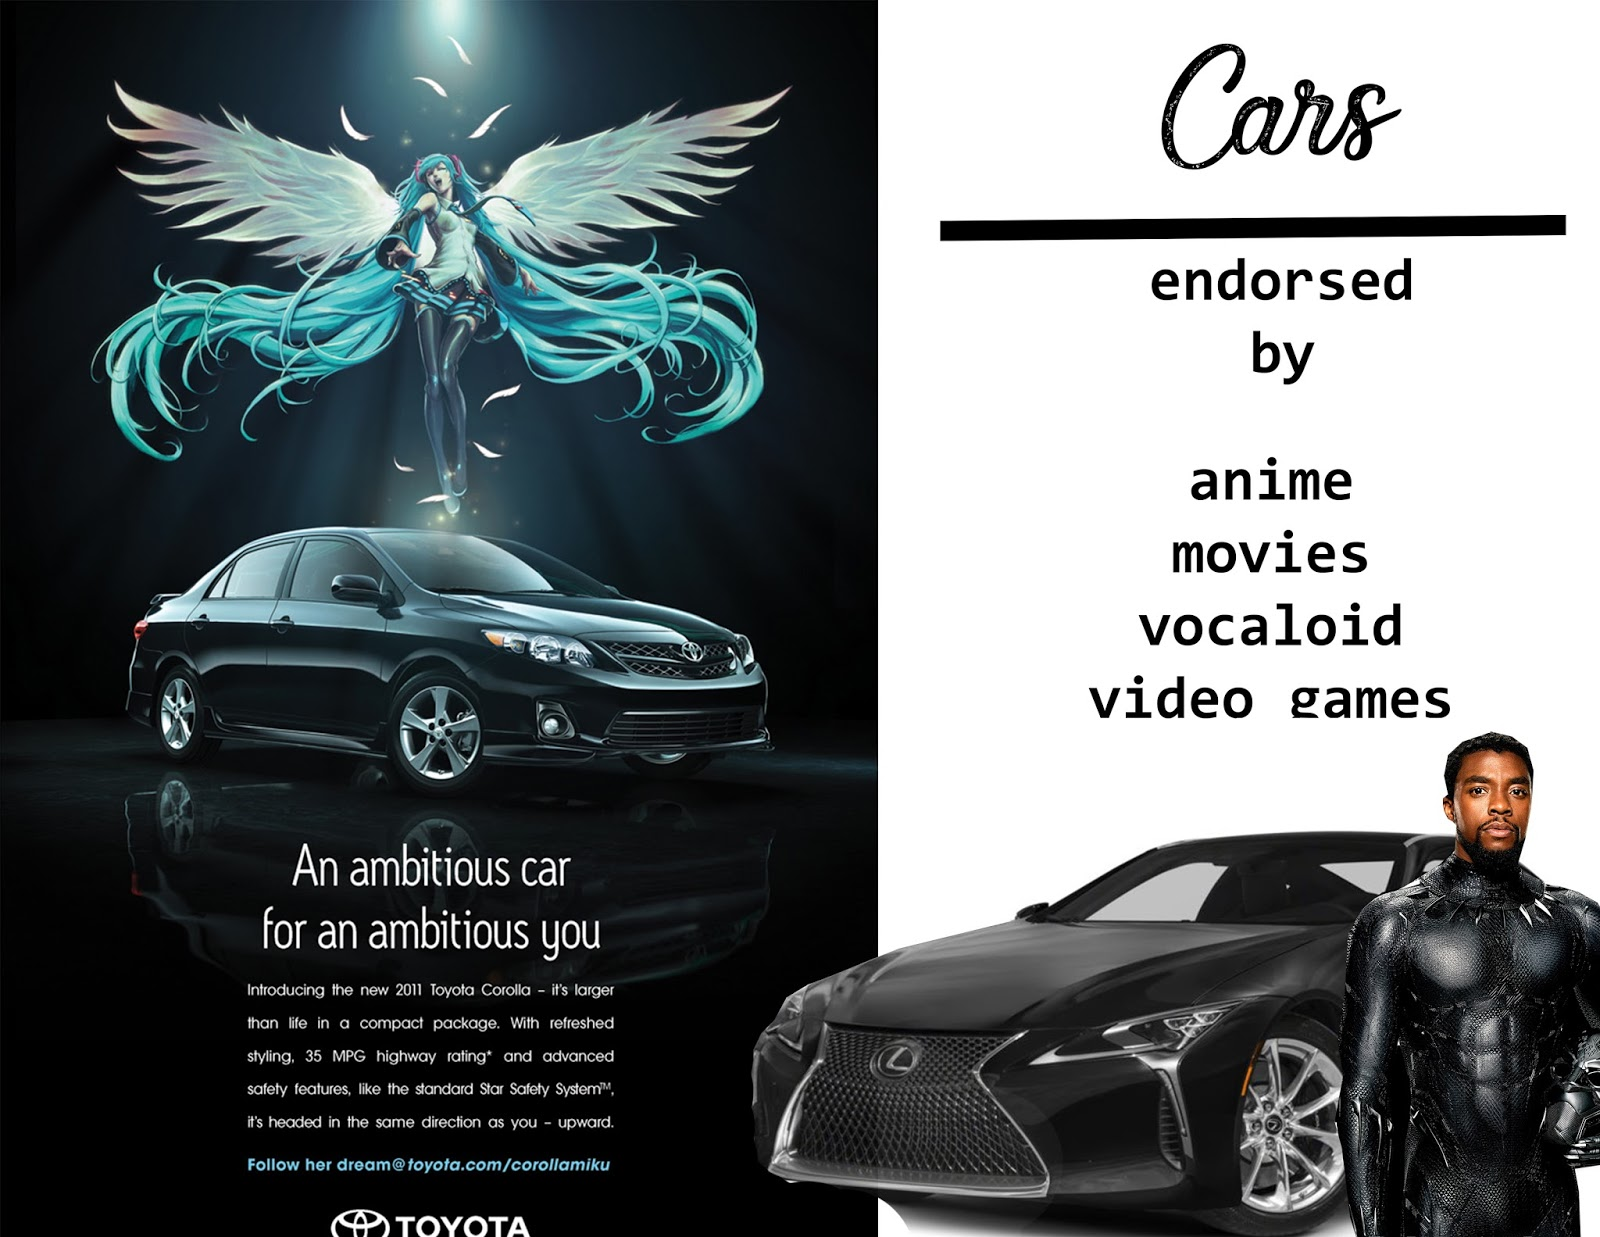 Cars endorsed by anime, video games, vocaloid and superhero movies